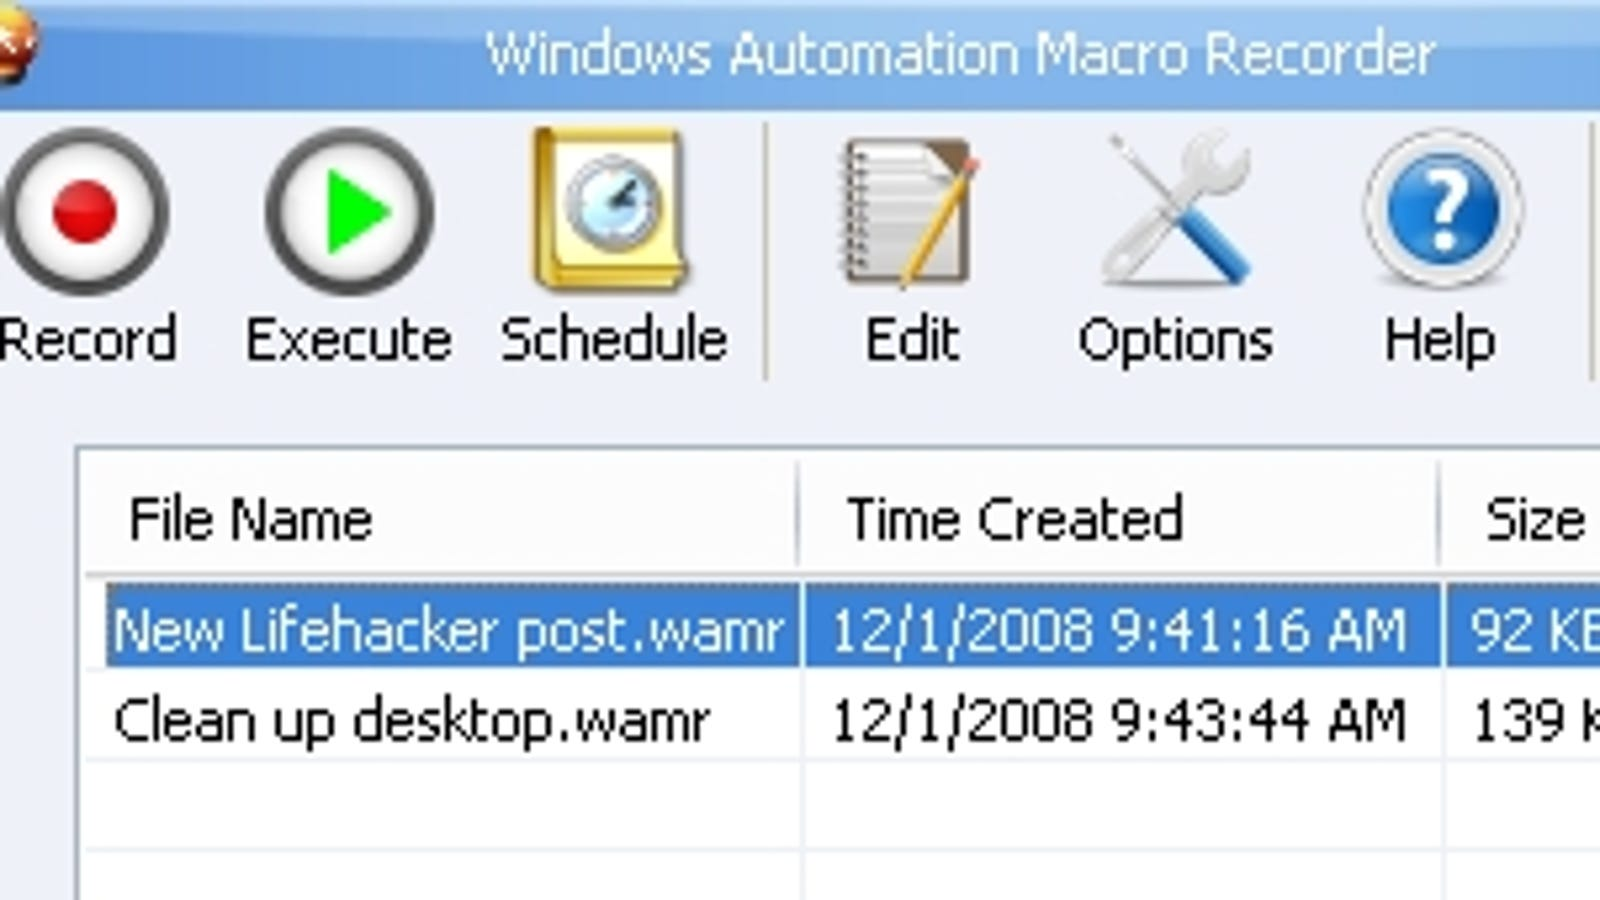 Windows Automation Macro Recorder Free Today Only